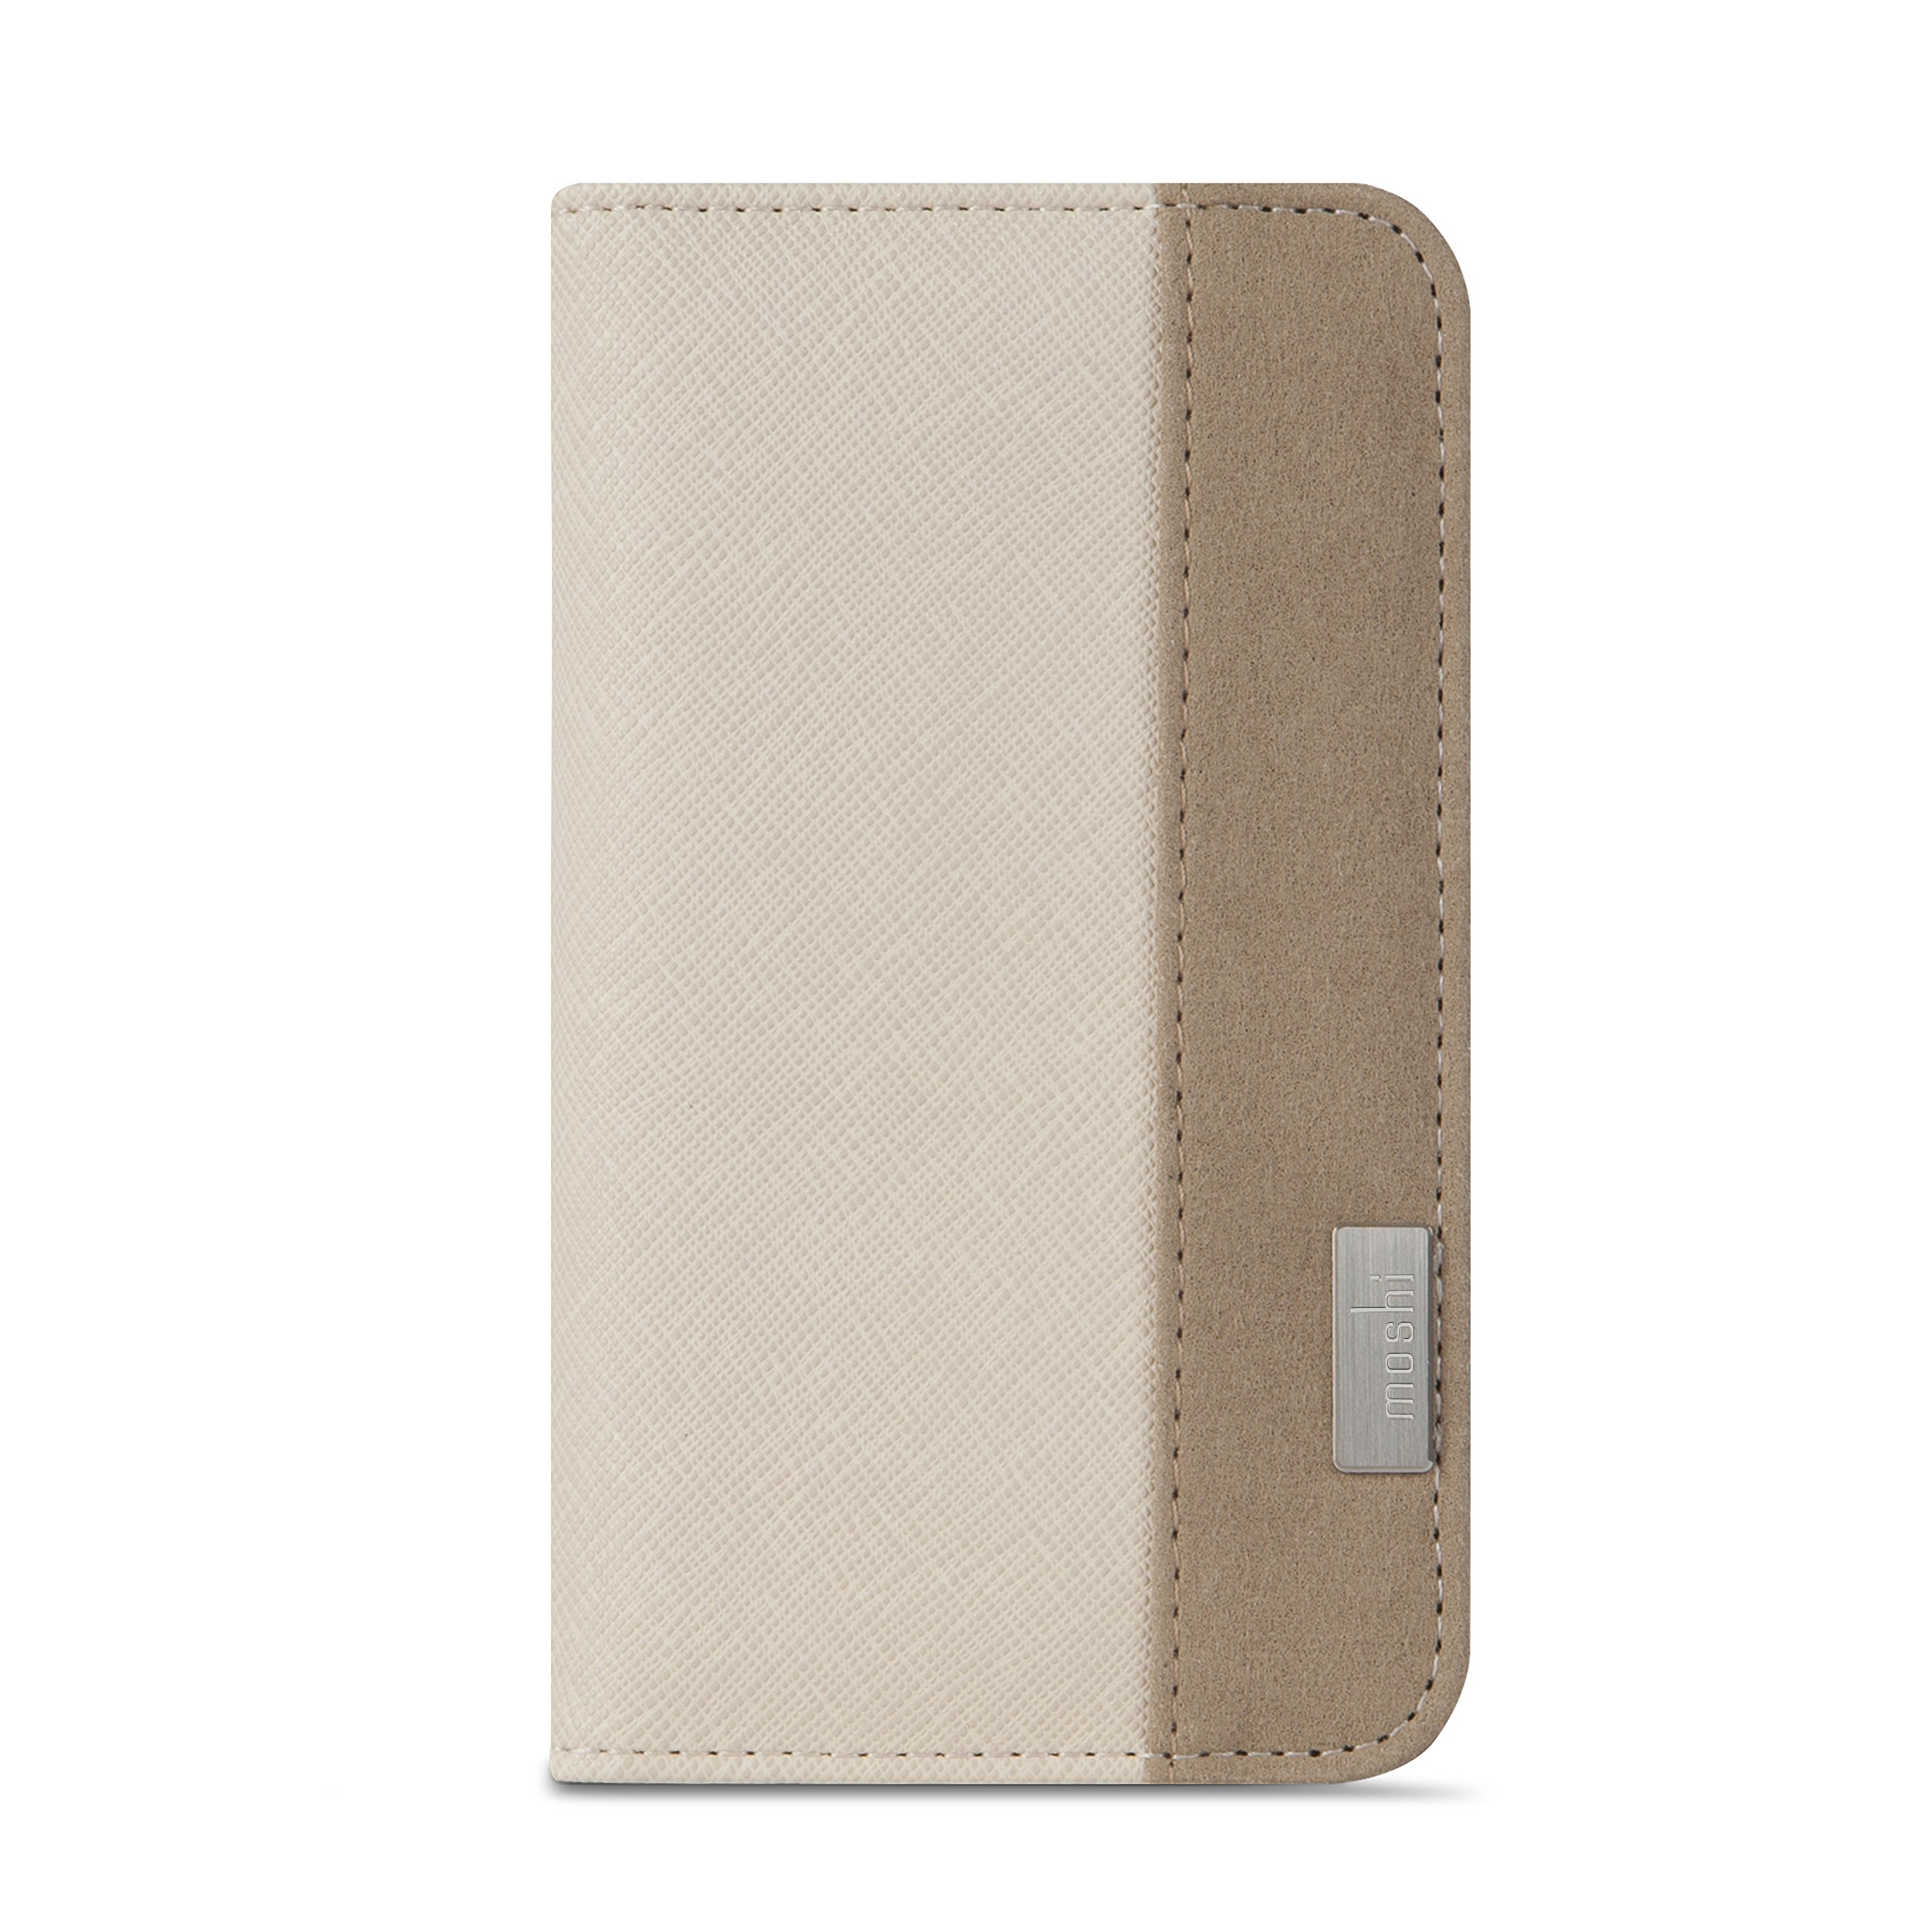 Moshi Overture Wallet Case for iPhone 6/6s - Beige